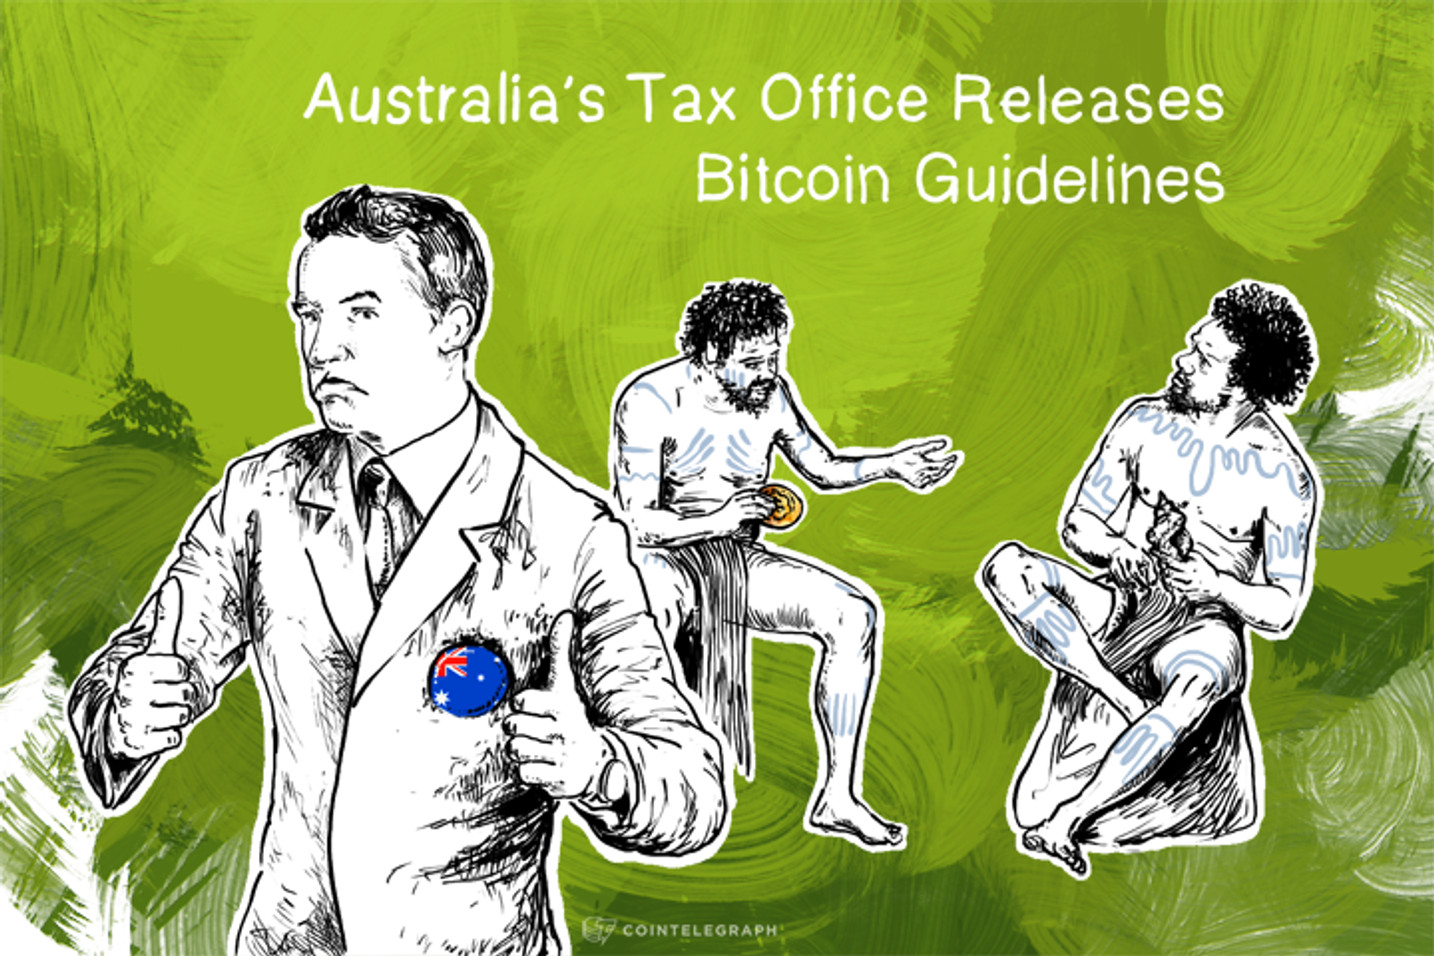 Australia's Tax Office Releases Bitcoin Guidelines